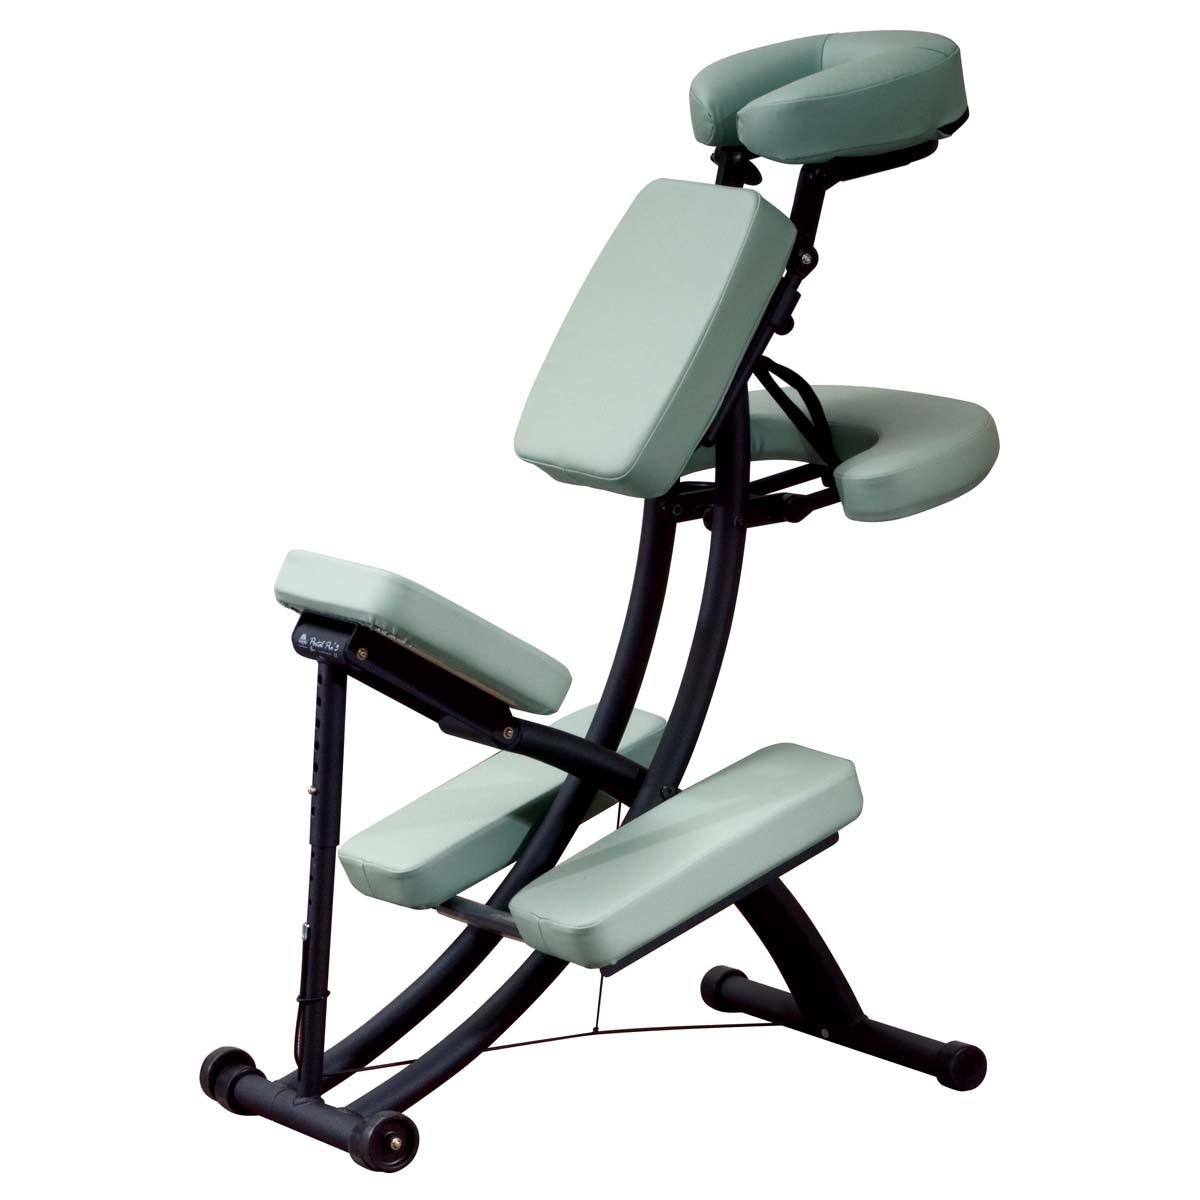 Portal pro portable massage chair - Portable reflexology chair ...